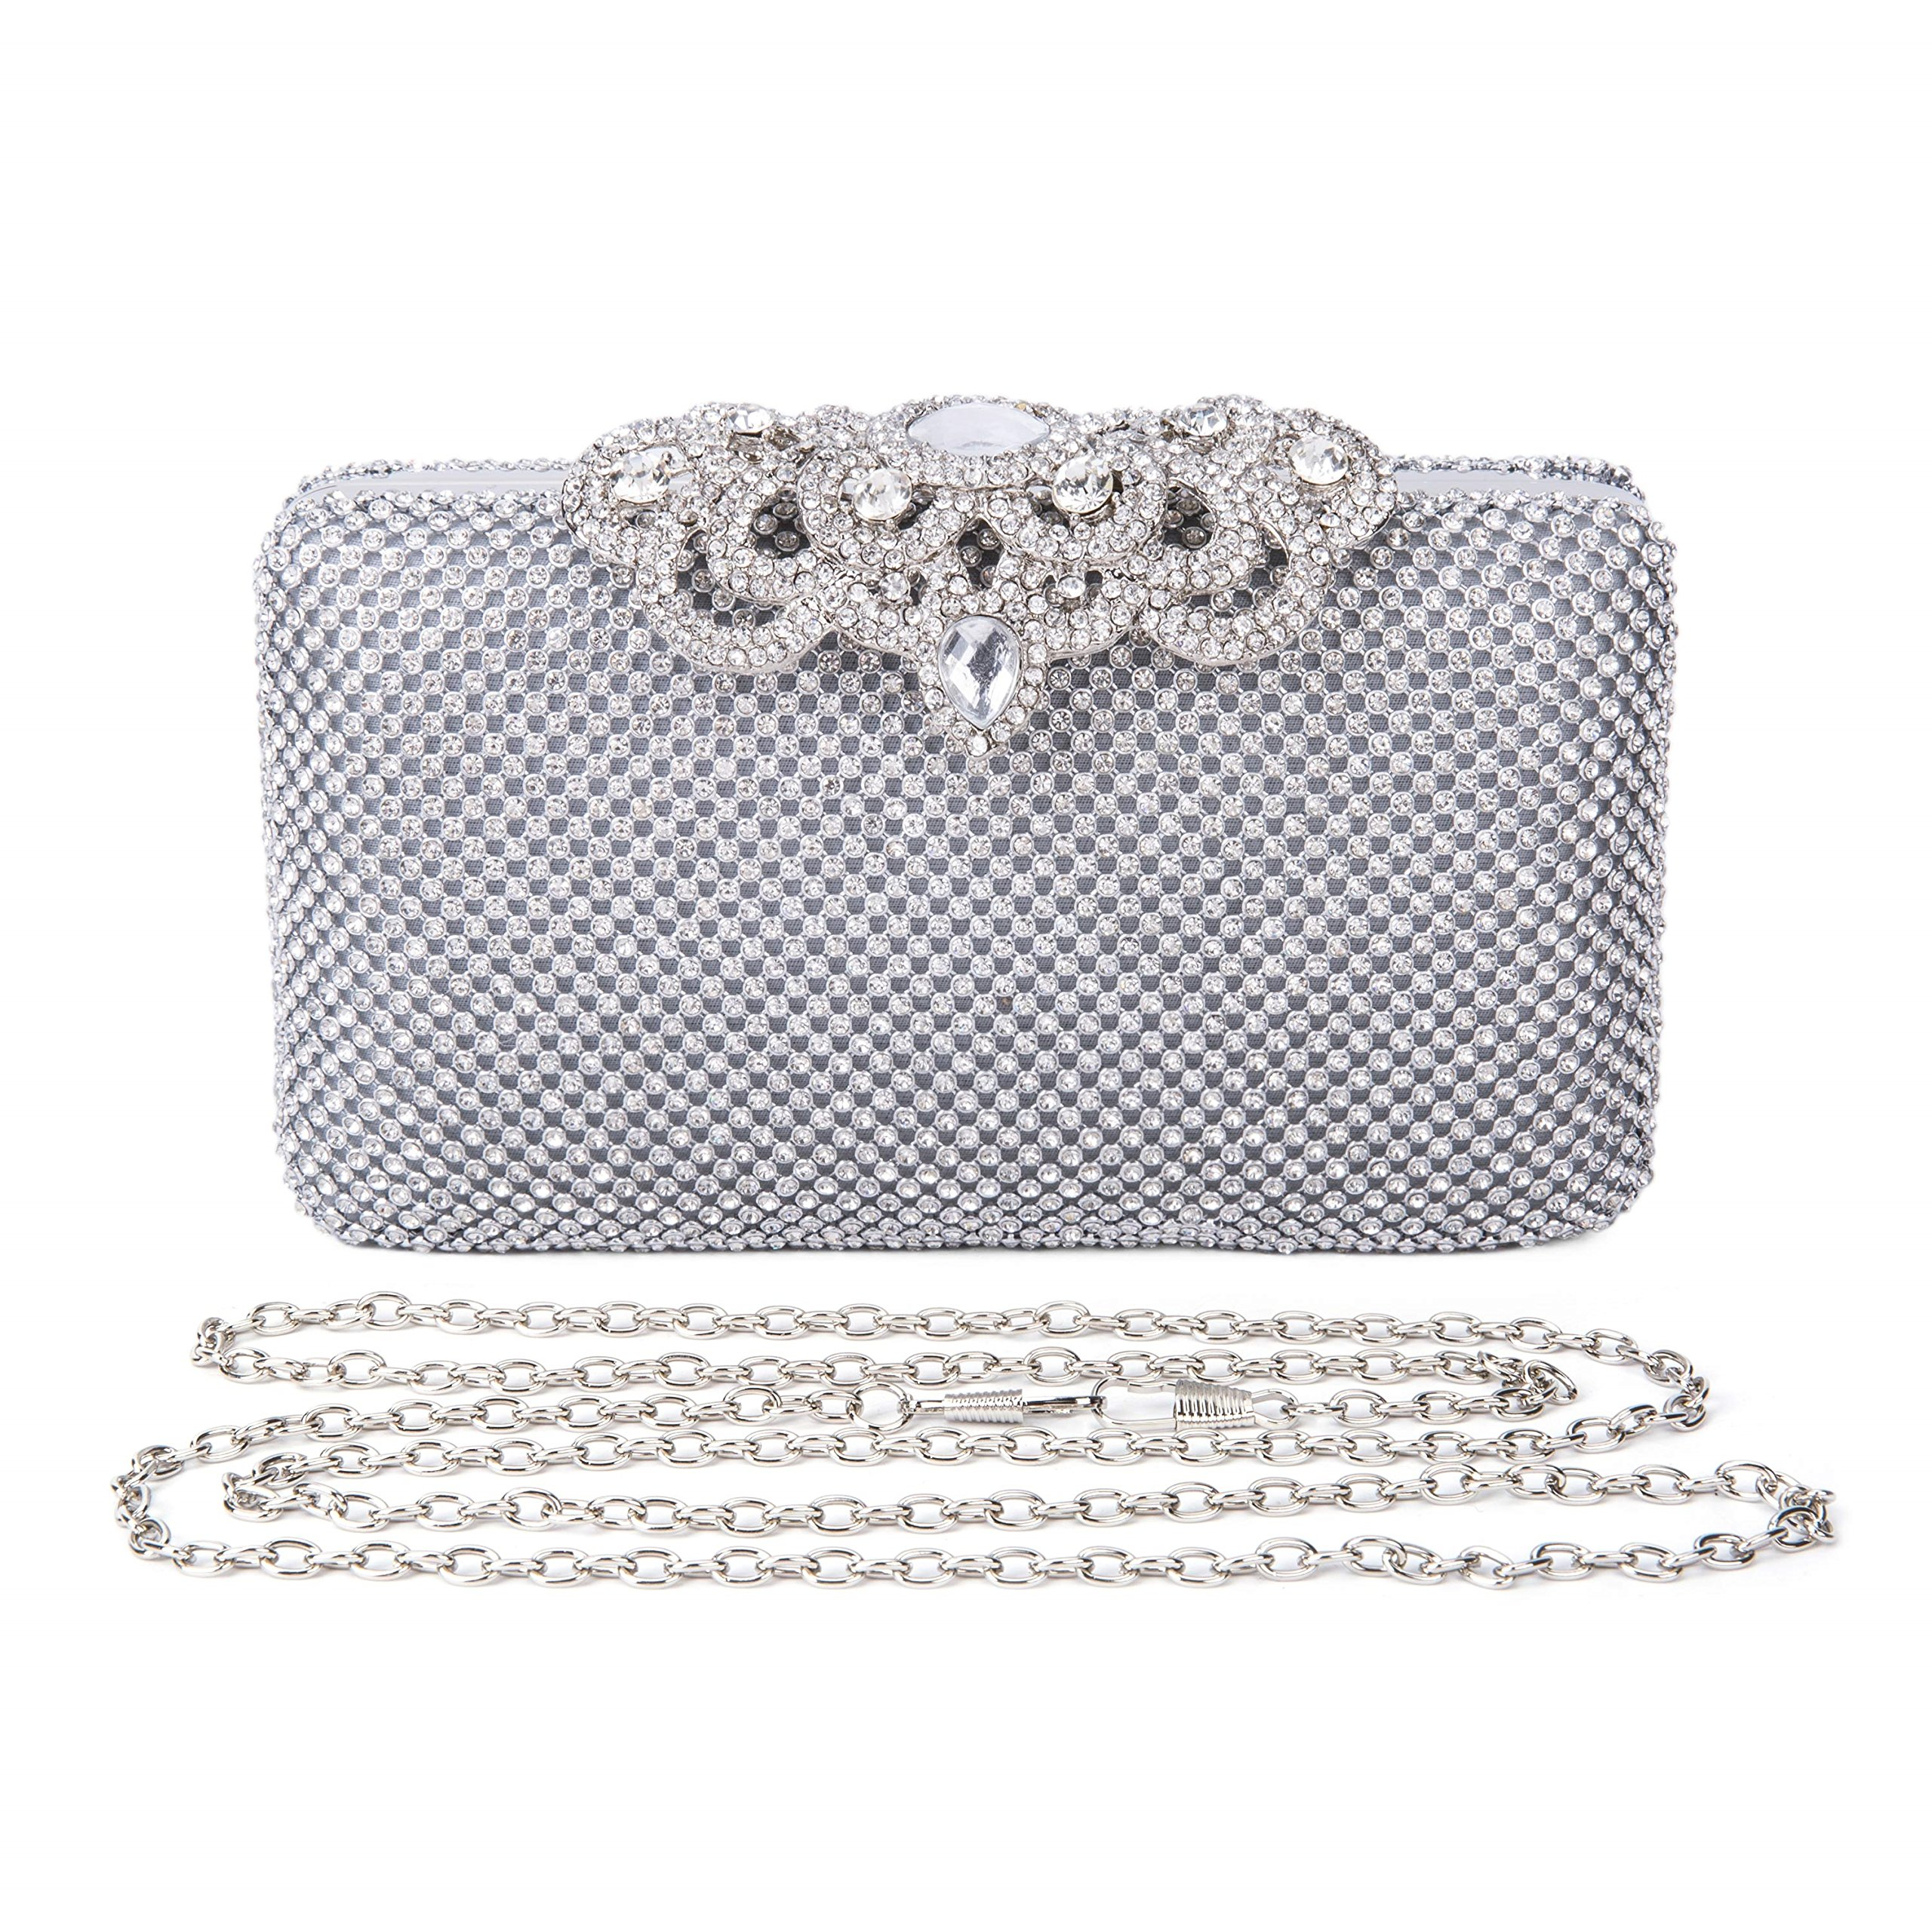 2017 Fashion Crystal Bag Clutch Purse Luxury Rhinestone Evening Bag Jewelry Handbag (Silver)